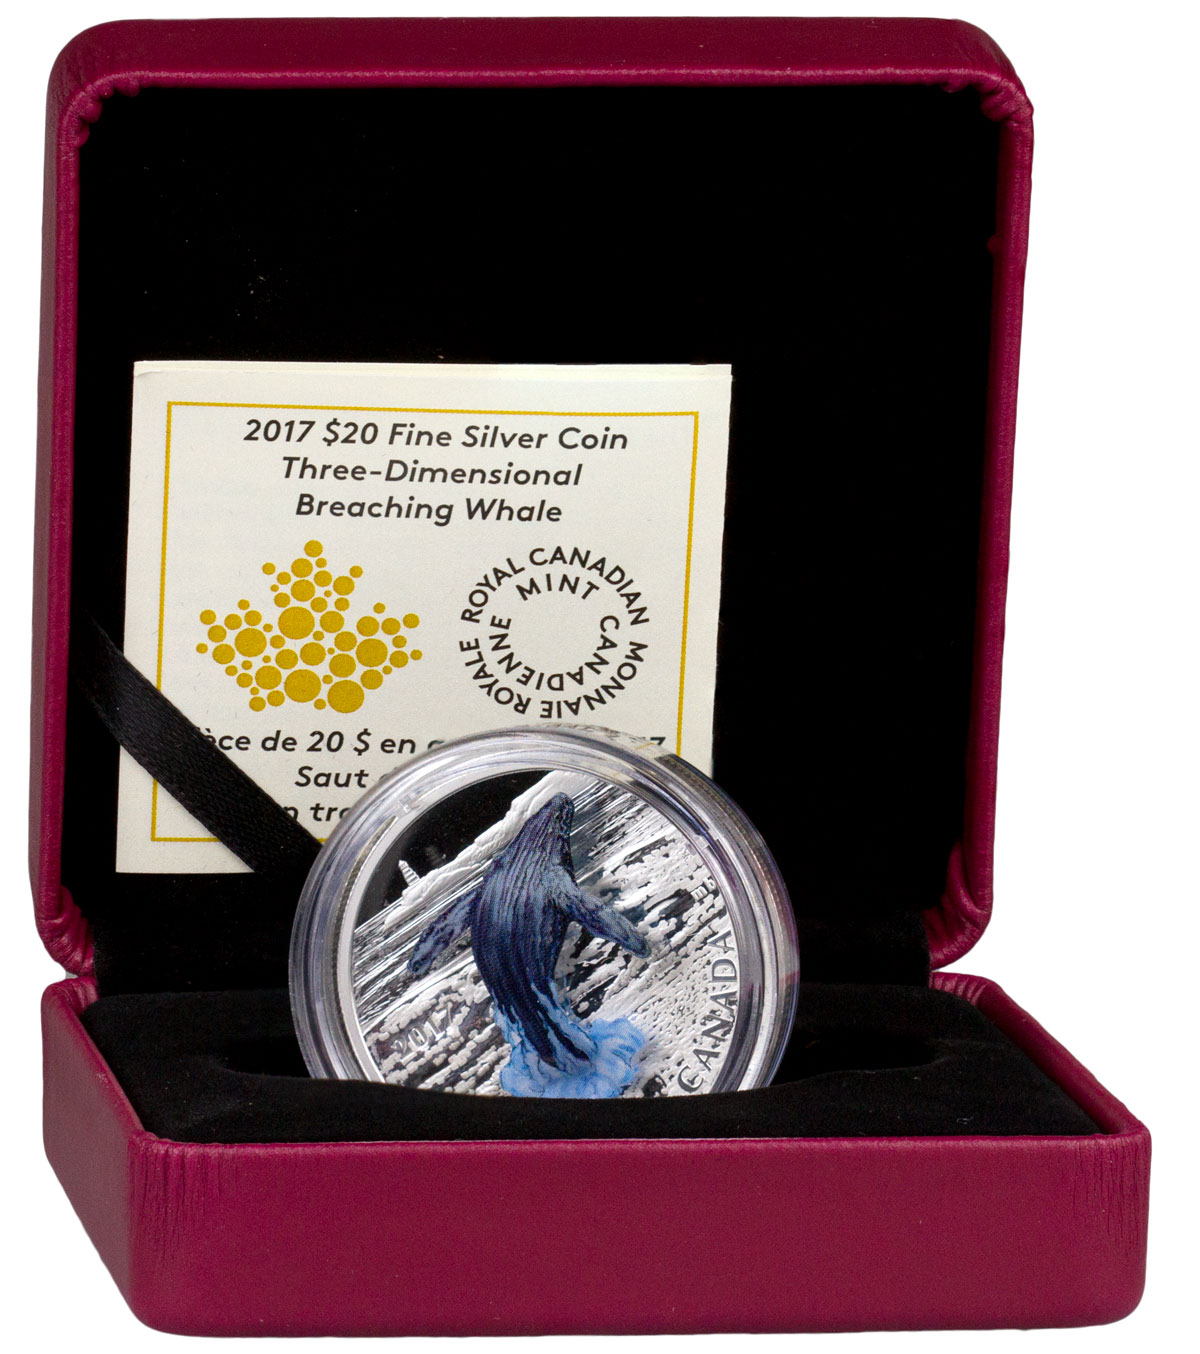 2017 Canada Three-Dimensional Series - Breaching Whale 1 oz Silver 3D Colorized Proof $20 Coin GEM Proof OGP